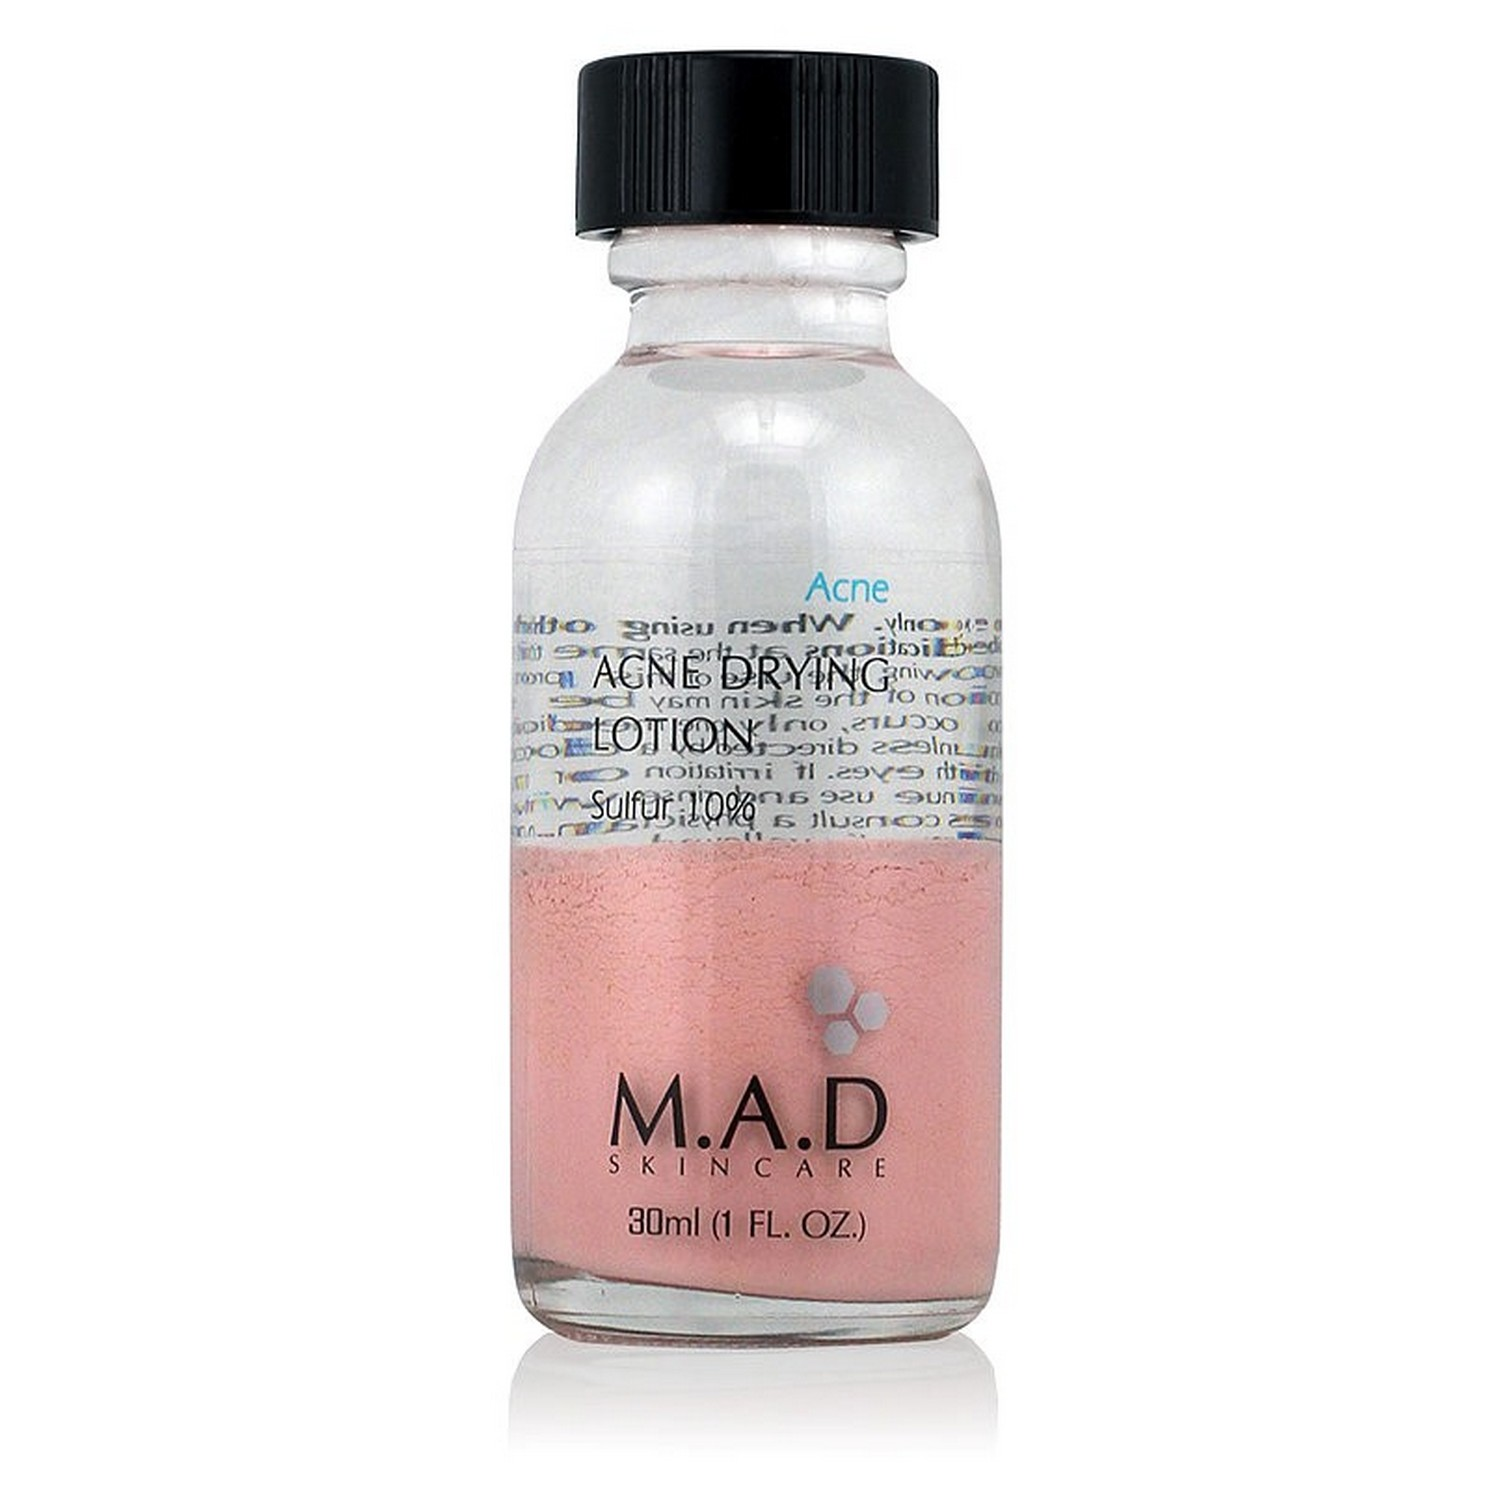 Image of M.A.D SKINCARE ACNE DRYING LOTION Sulfur 10% (30 ml / 1.0 fl oz)